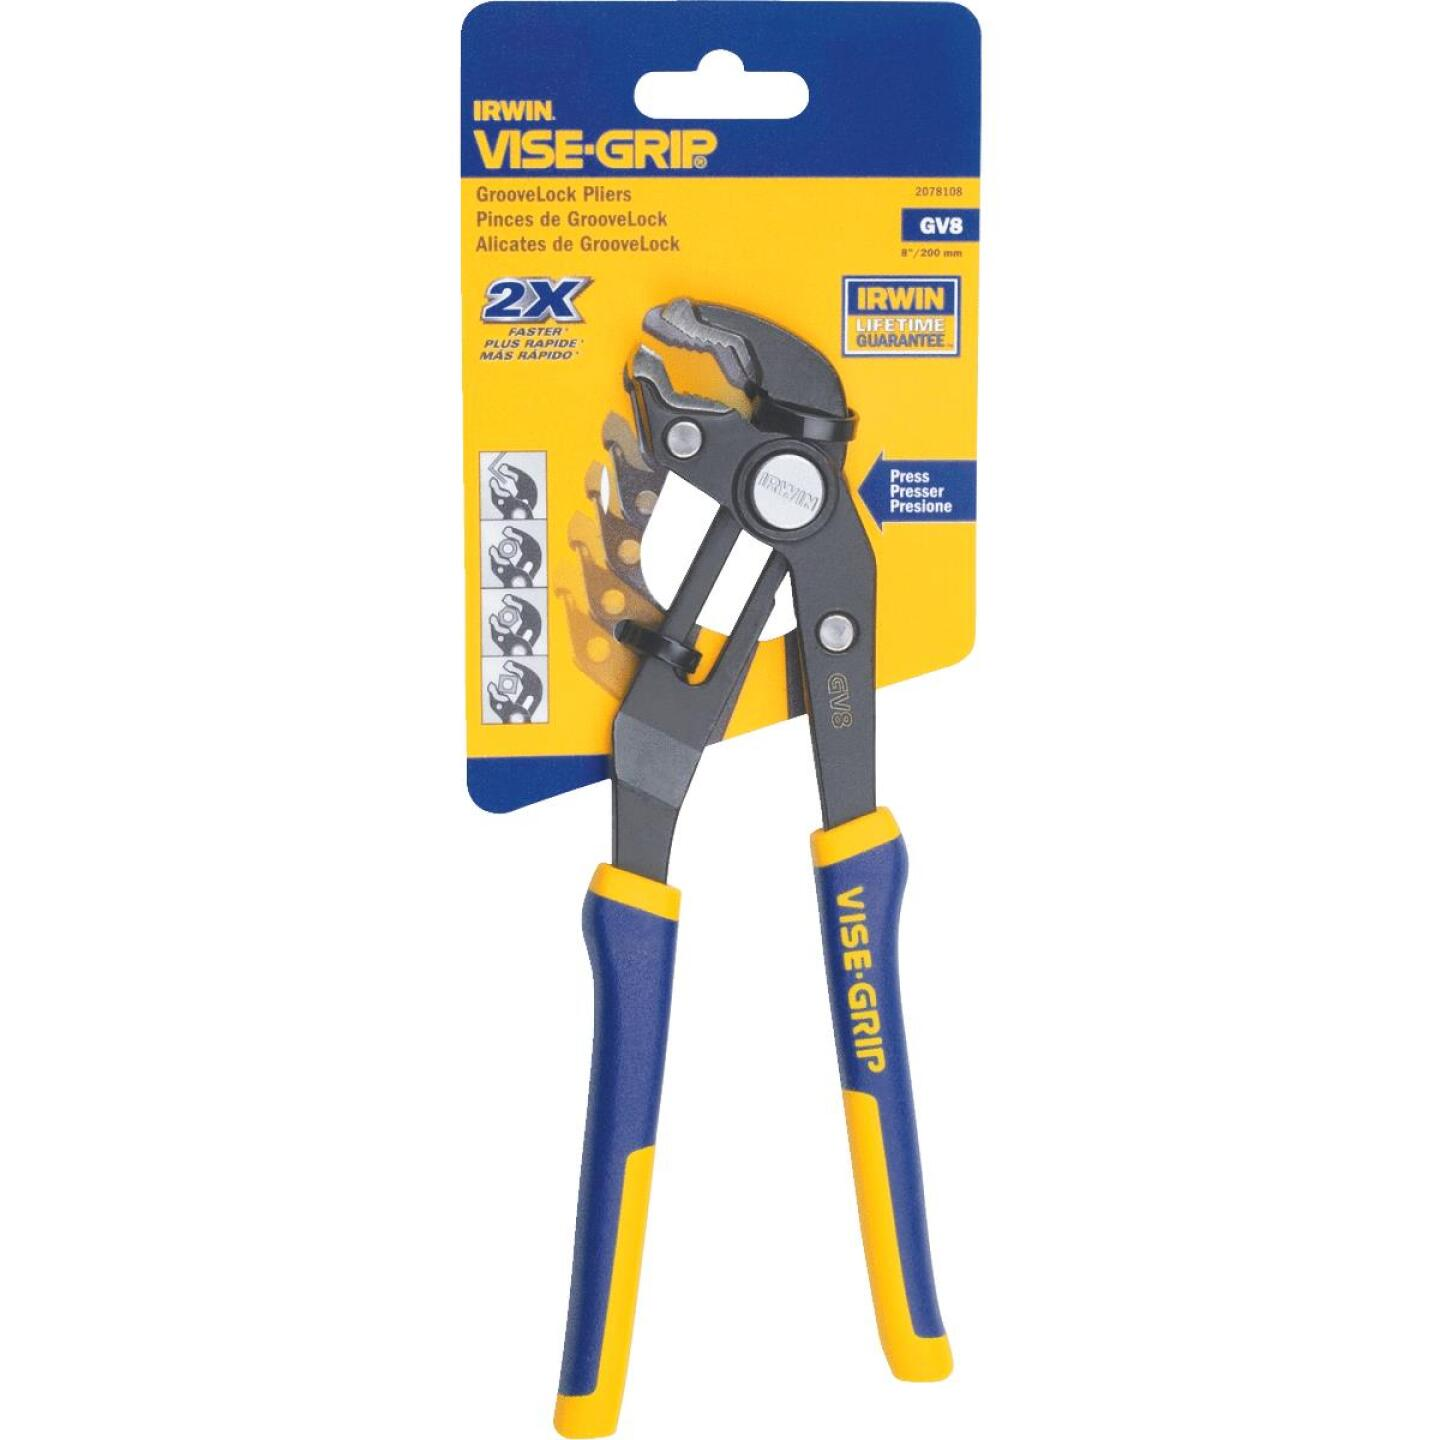 Irwin Vise-Grip 8 In. V-Jaw GrooveLock Groove Joint Pliers Image 6